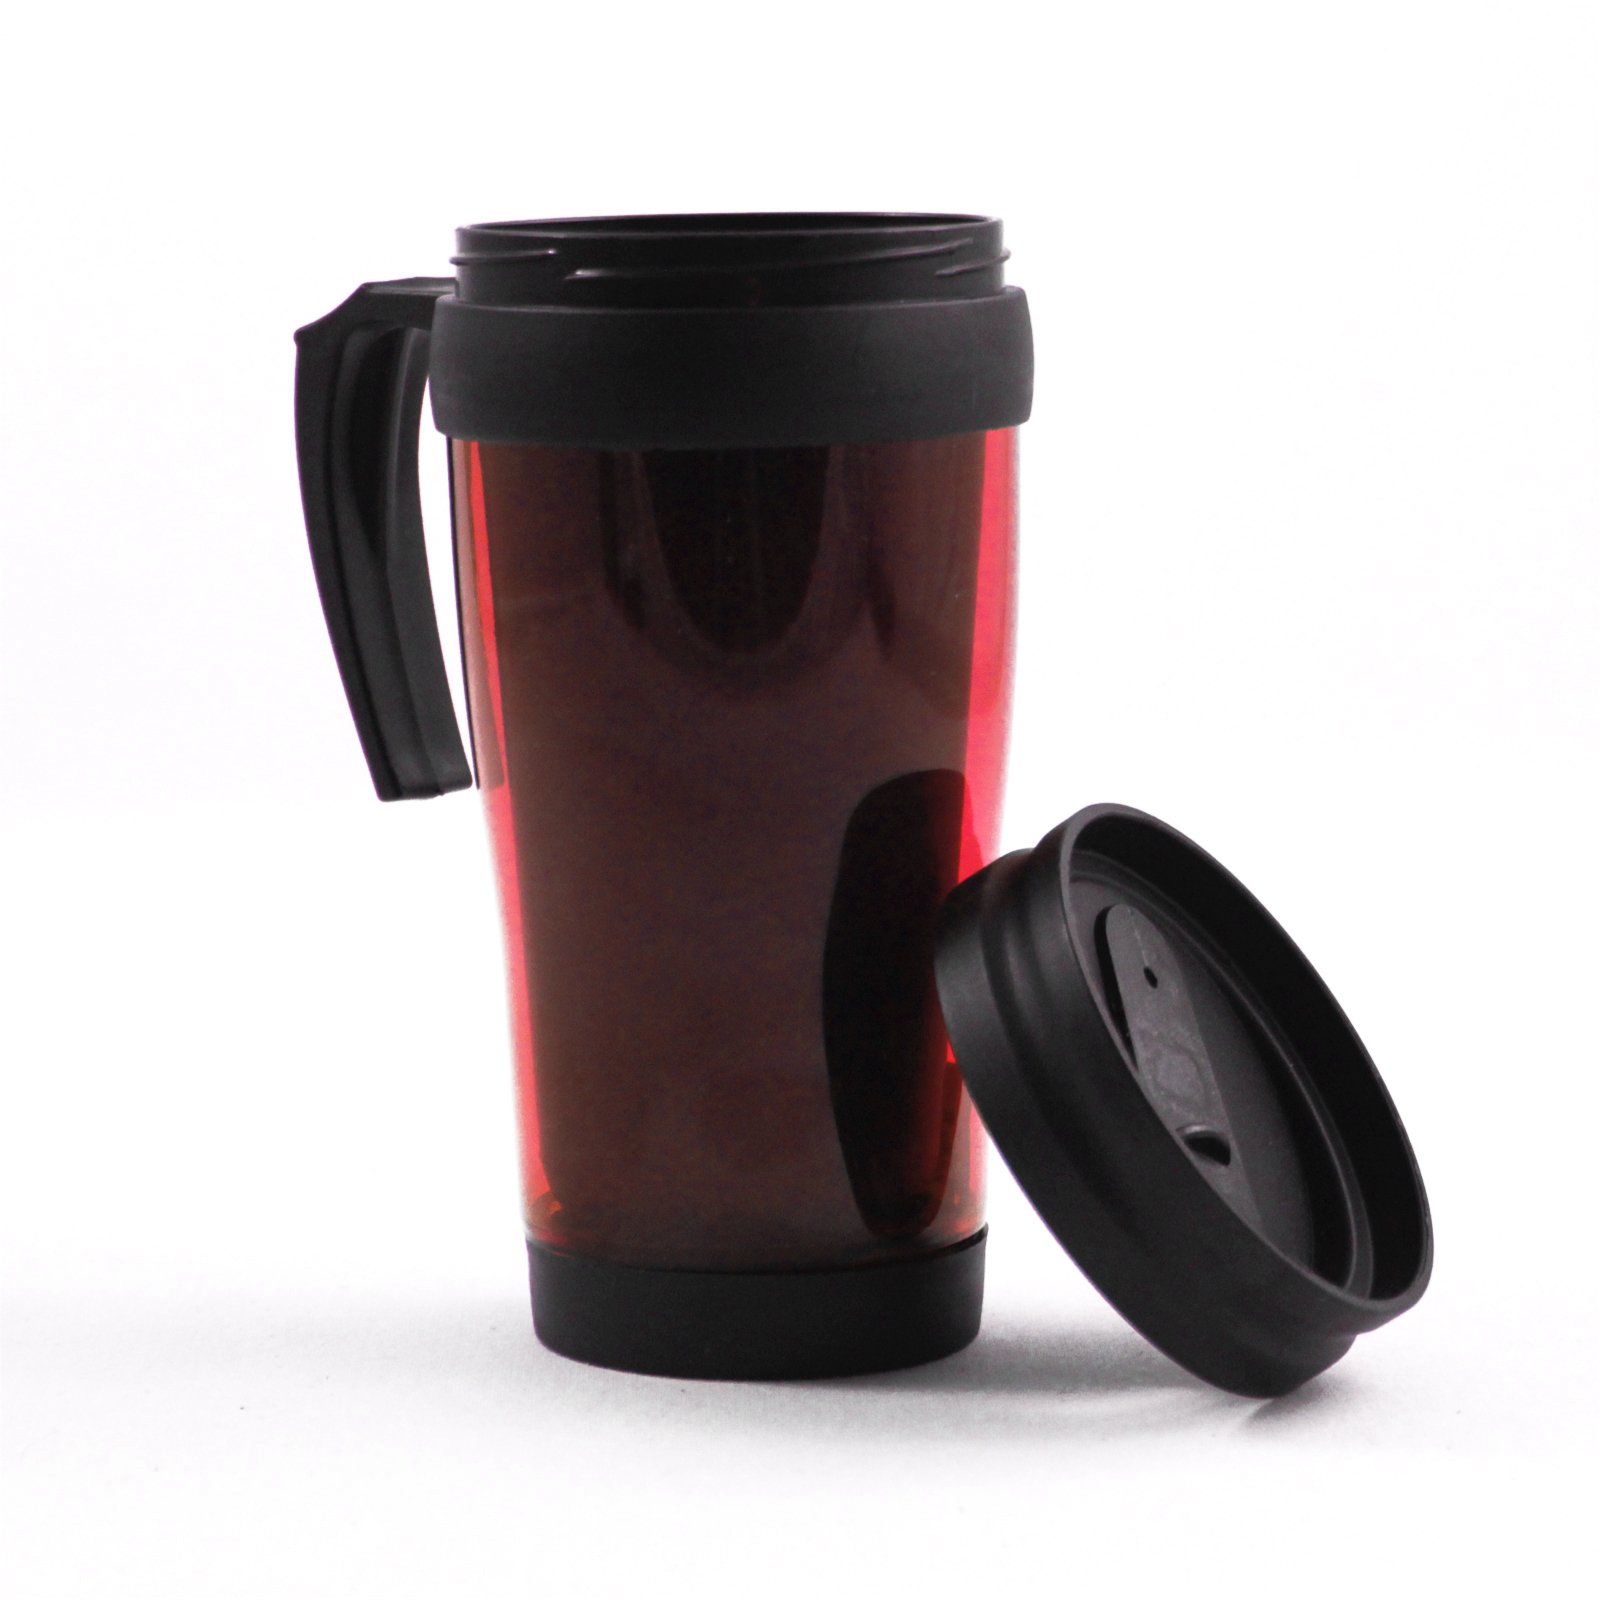 16oz Blue Travel Mug Car Coffee Cup Tumbler Auto Beverage Holder - Red